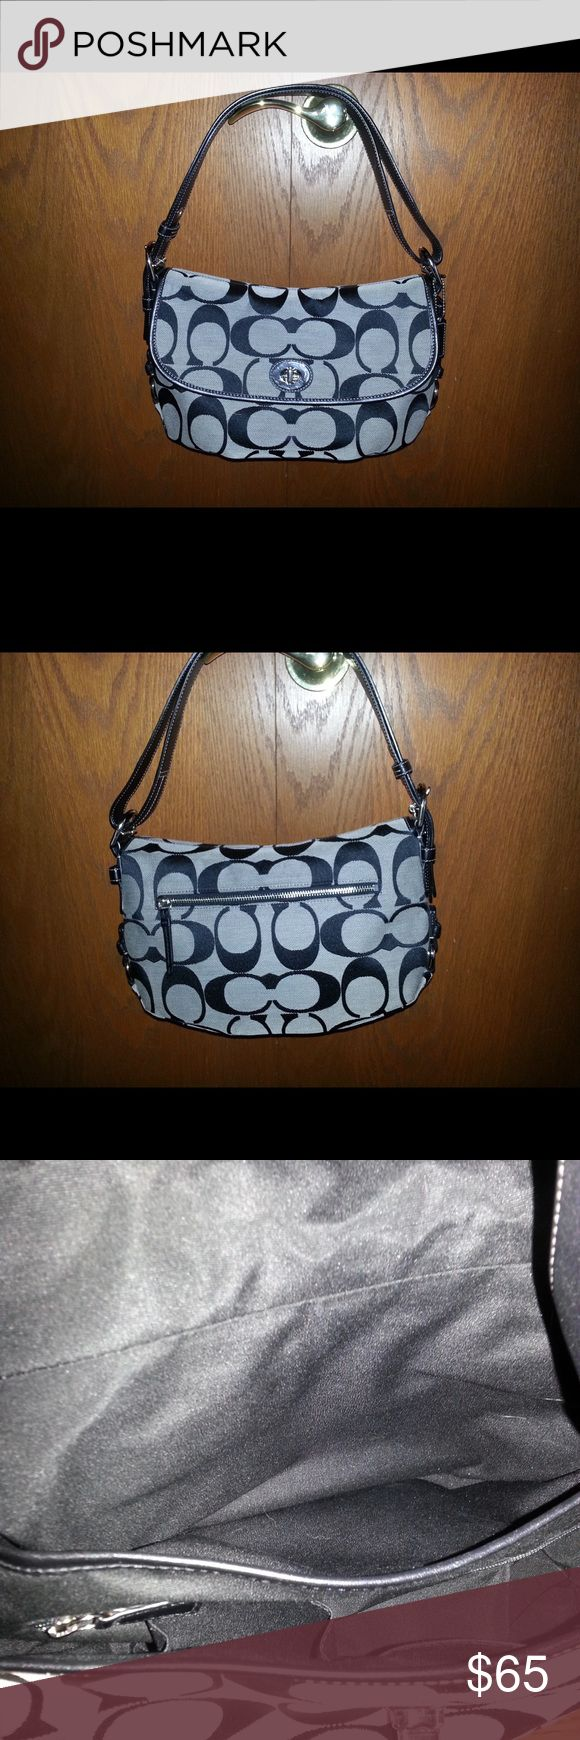 Black and white coach purse Like new black and white coach purse. Super clean inside and barely used. Coach Bags Shoulder Bags